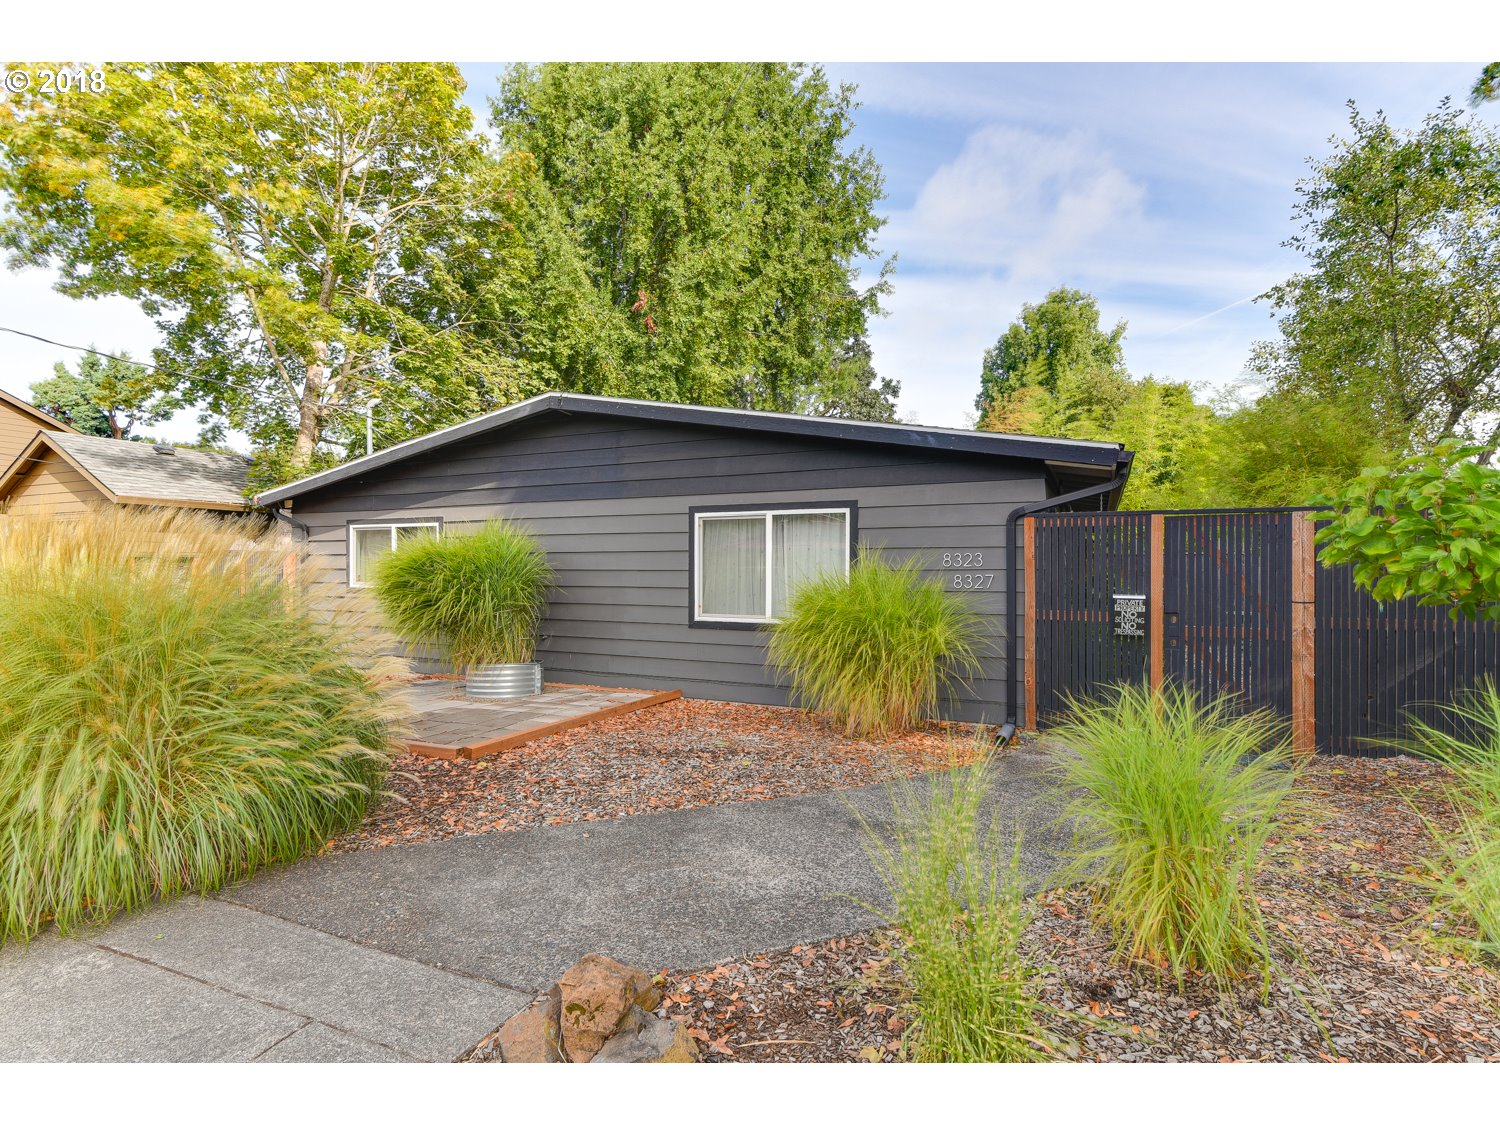 Photo for 8323 N HUDSON ST, Portland, OR 97203 (MLS # 18144617)